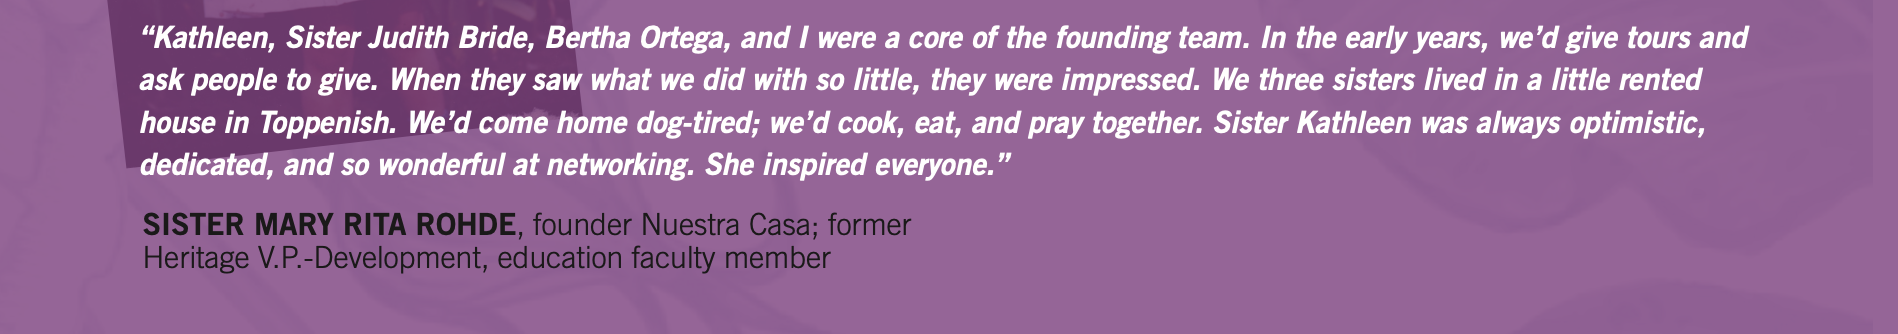 Sister Mary Rita Rohde quote for Kathleen Ross, snjm